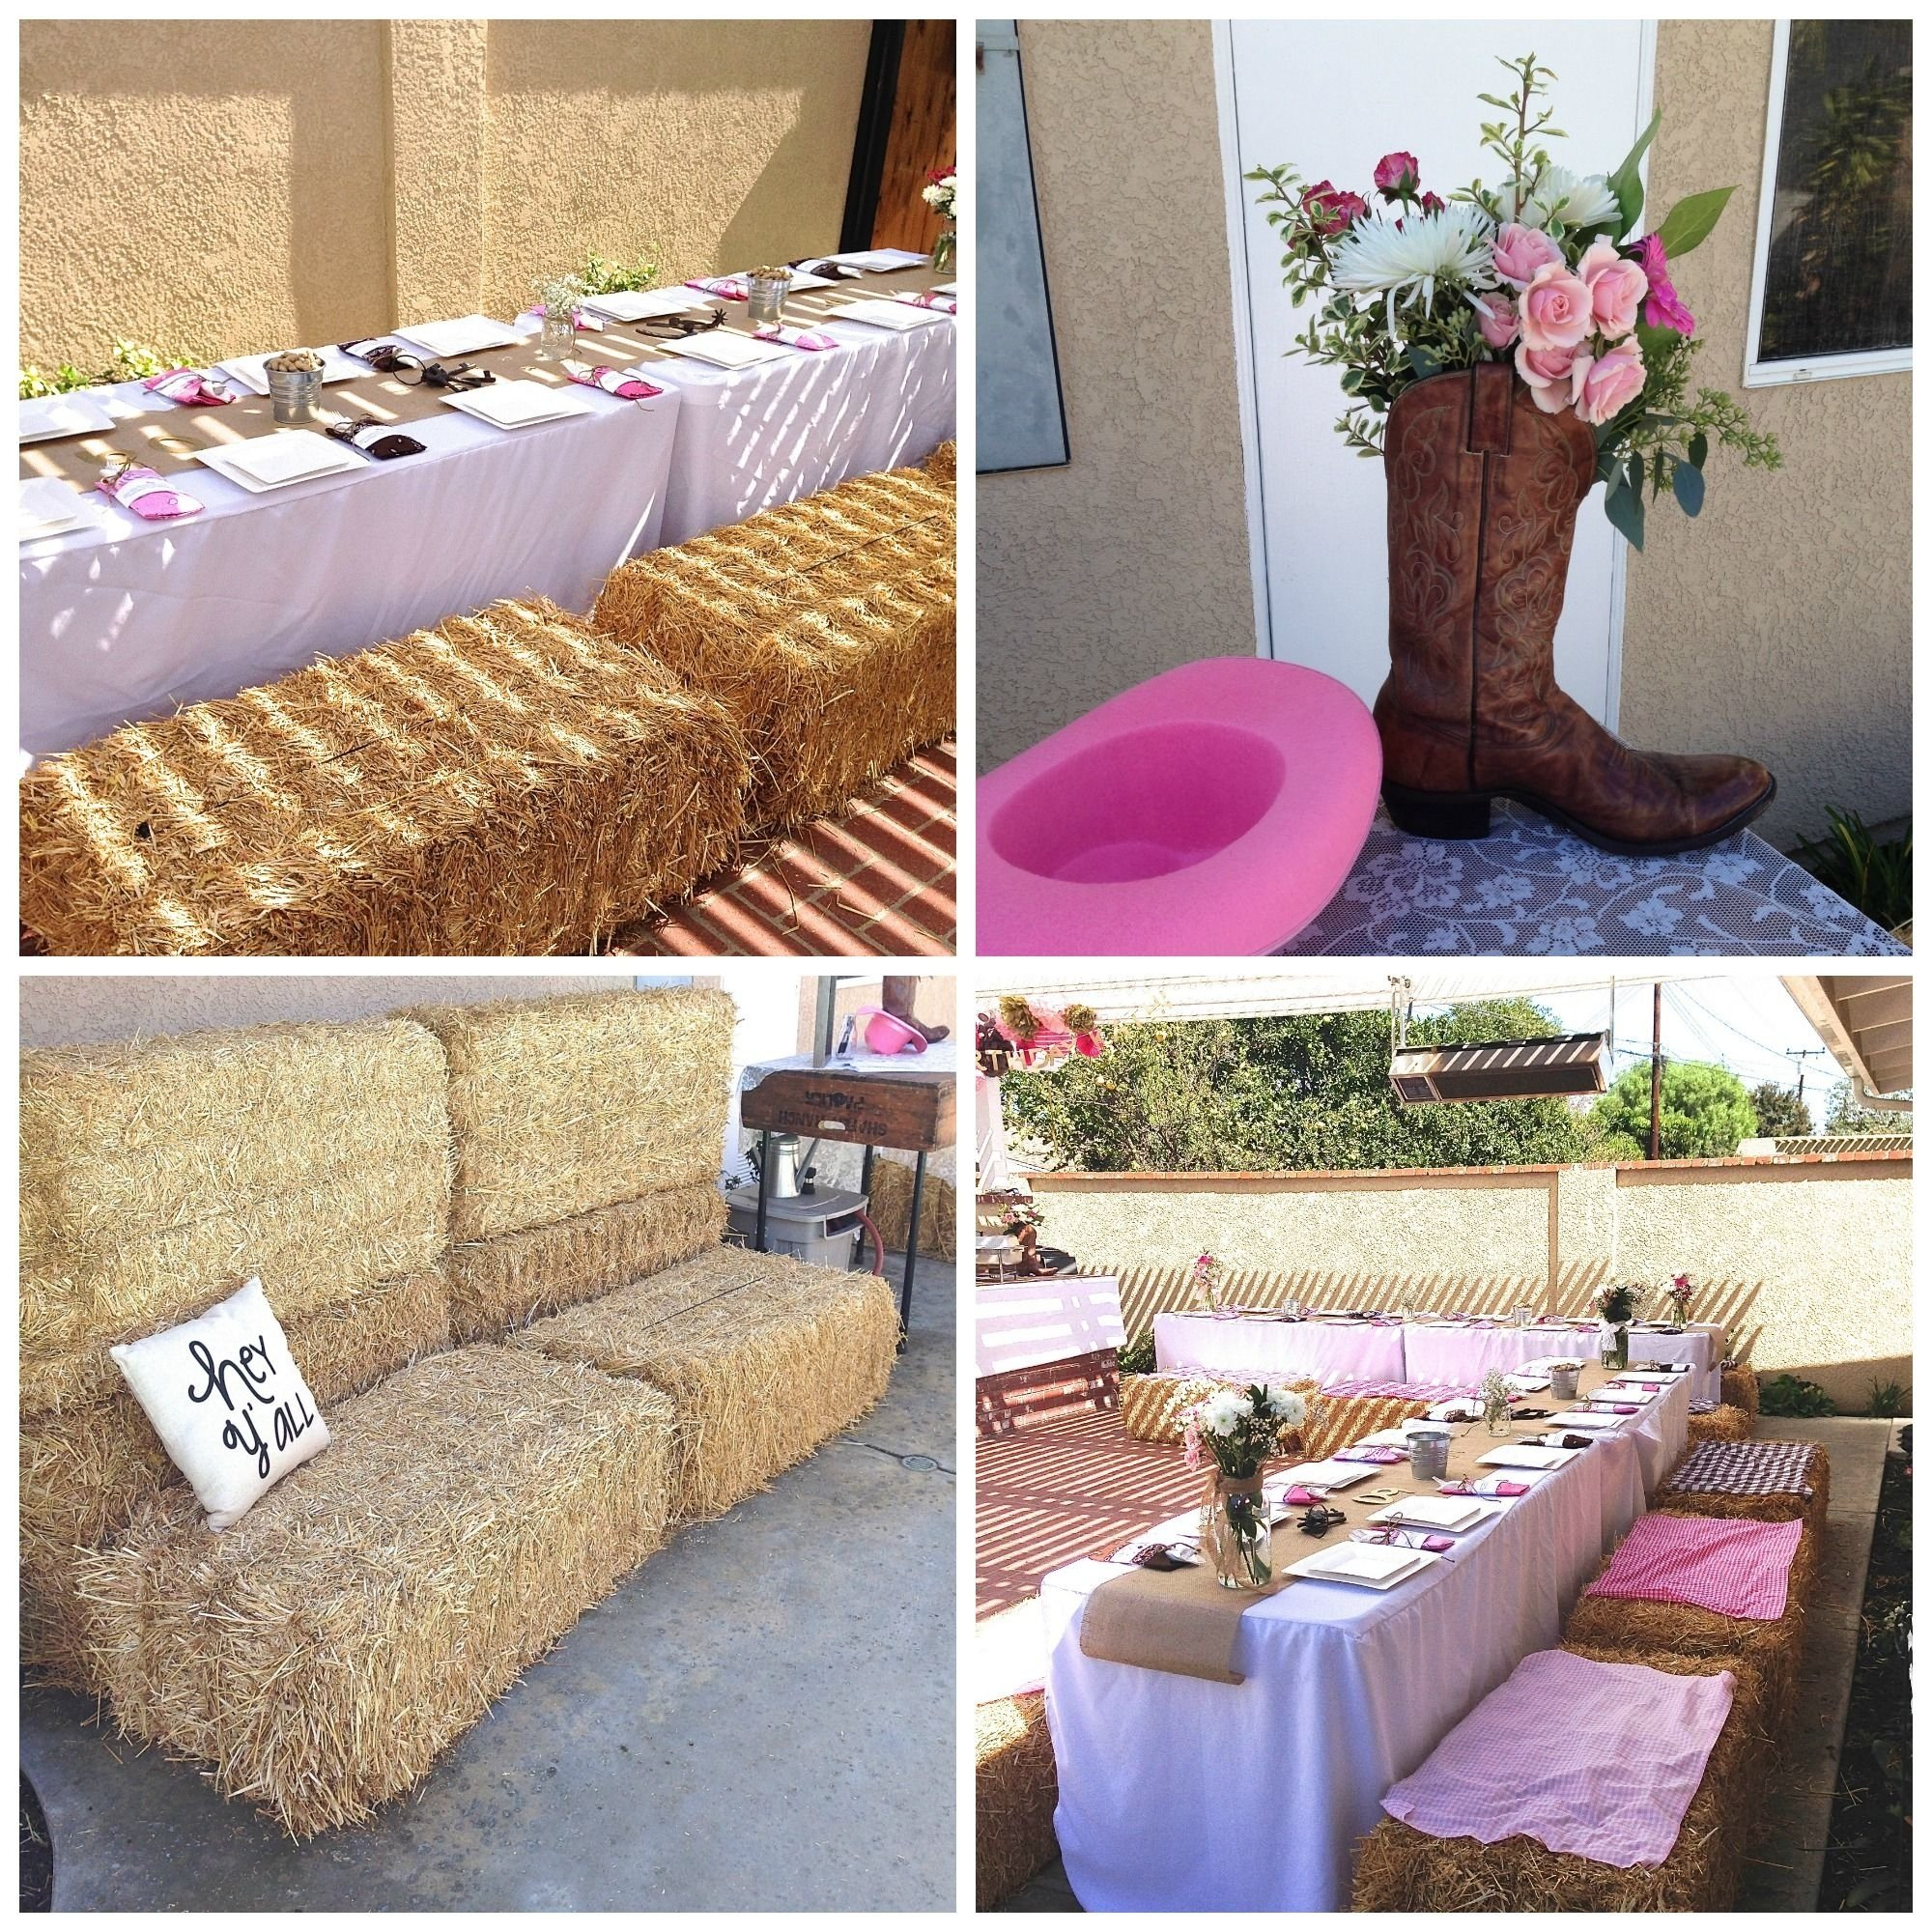 10 Attractive Western Party Ideas For Adults western birthday adult western party hay bales flower boot